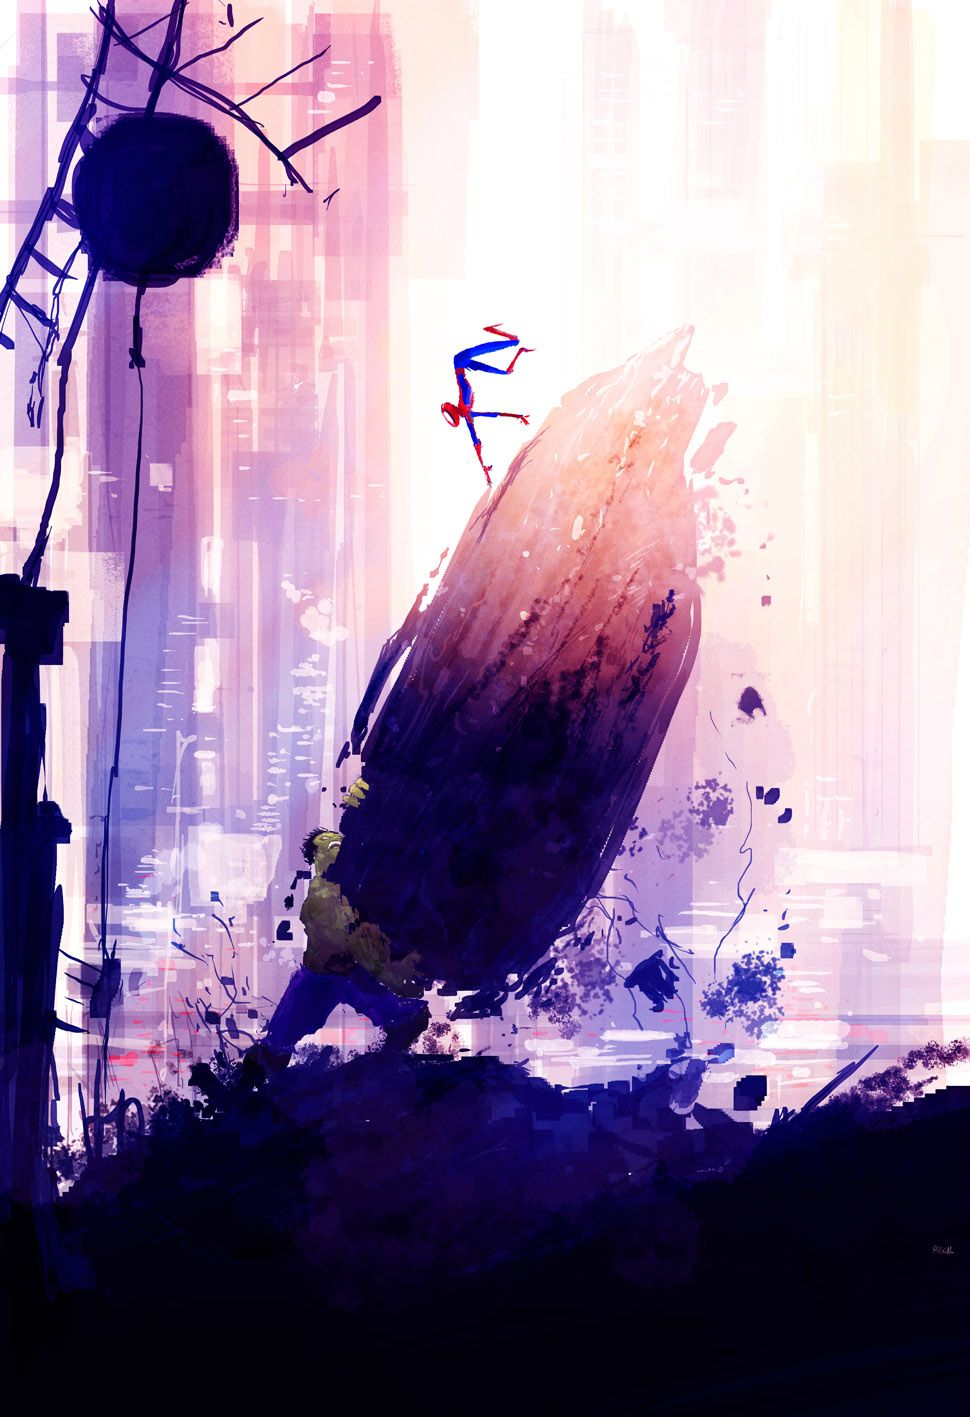 Super Heroic Sky Lines By Pascal Campion Hombre Araña